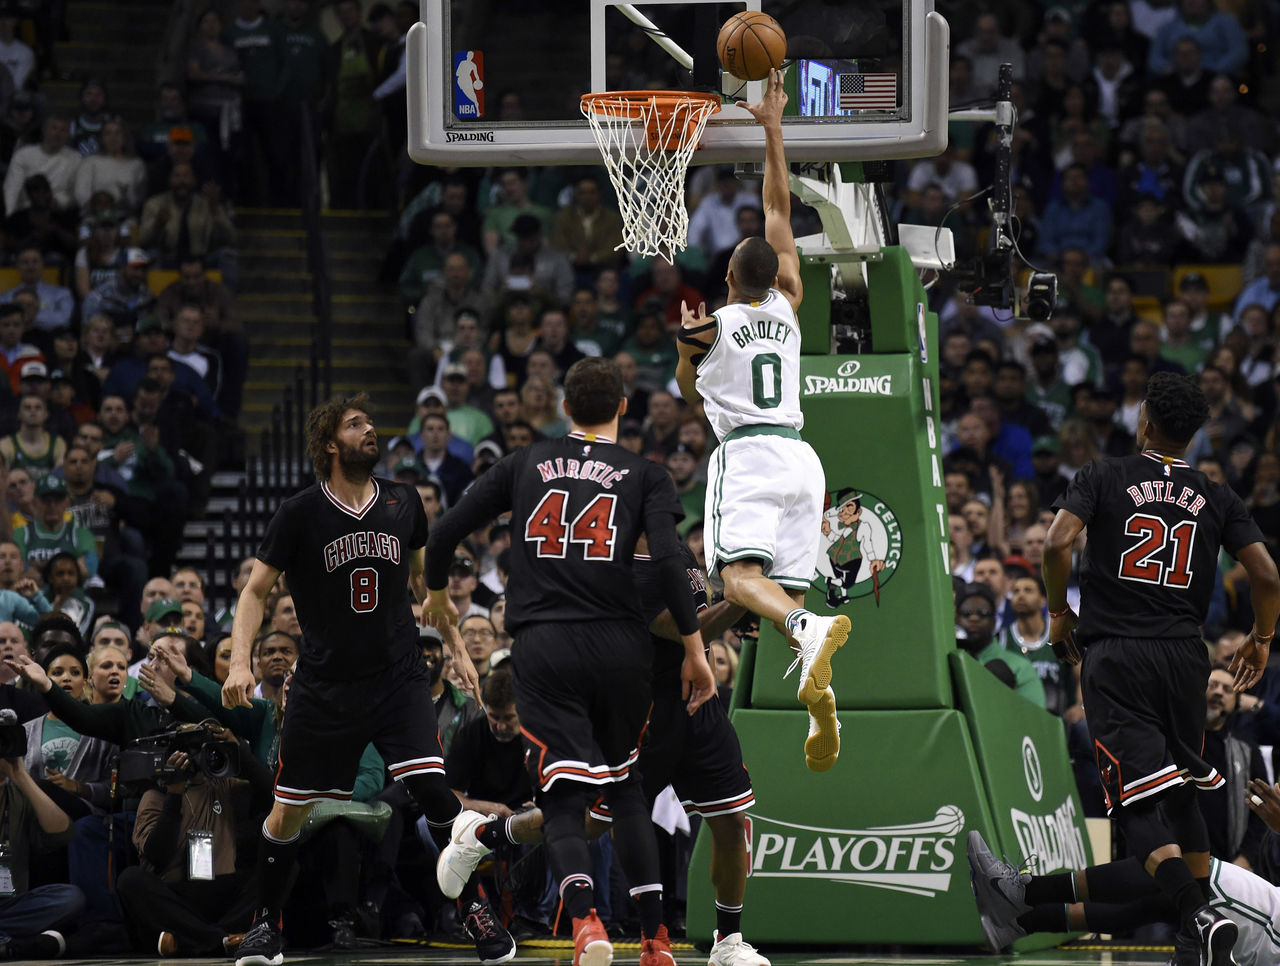 Cropped 2017 04 27t020340z 655767286 nocid rtrmadp 3 nba playoffs chicago bulls at boston celtics